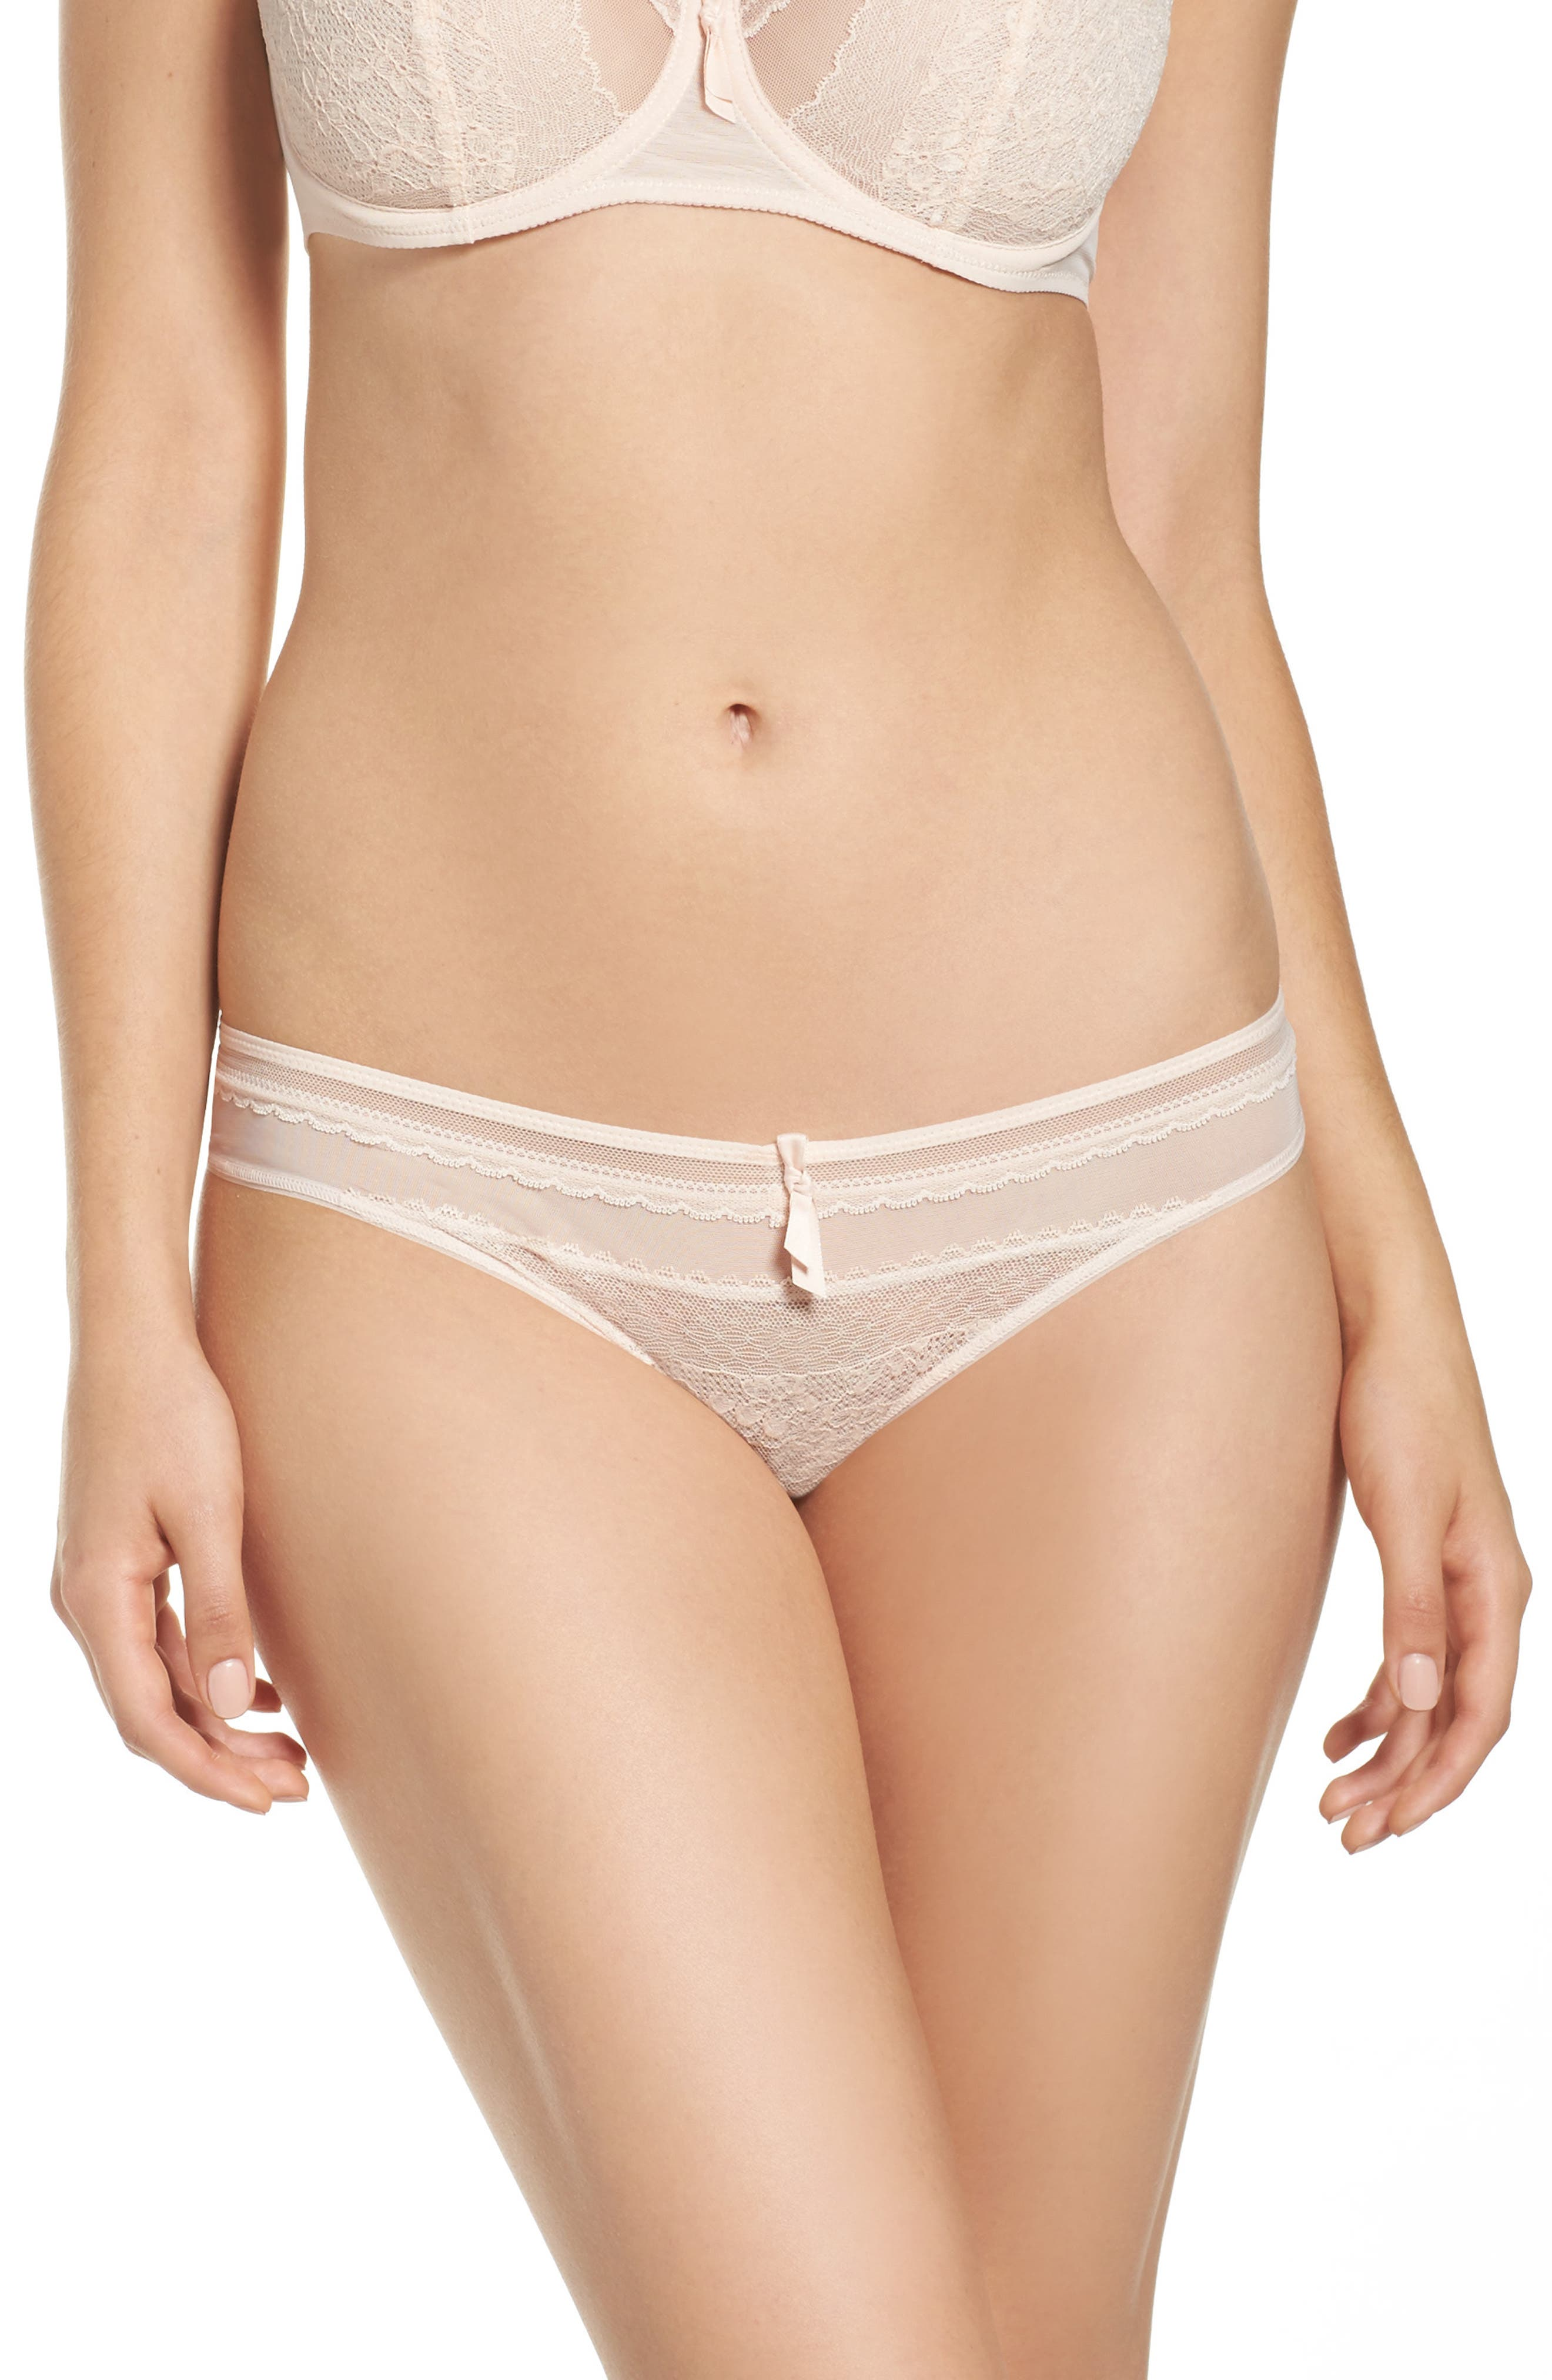 Embrasse Moi Lace Thong,                         Main,                         color, Blush